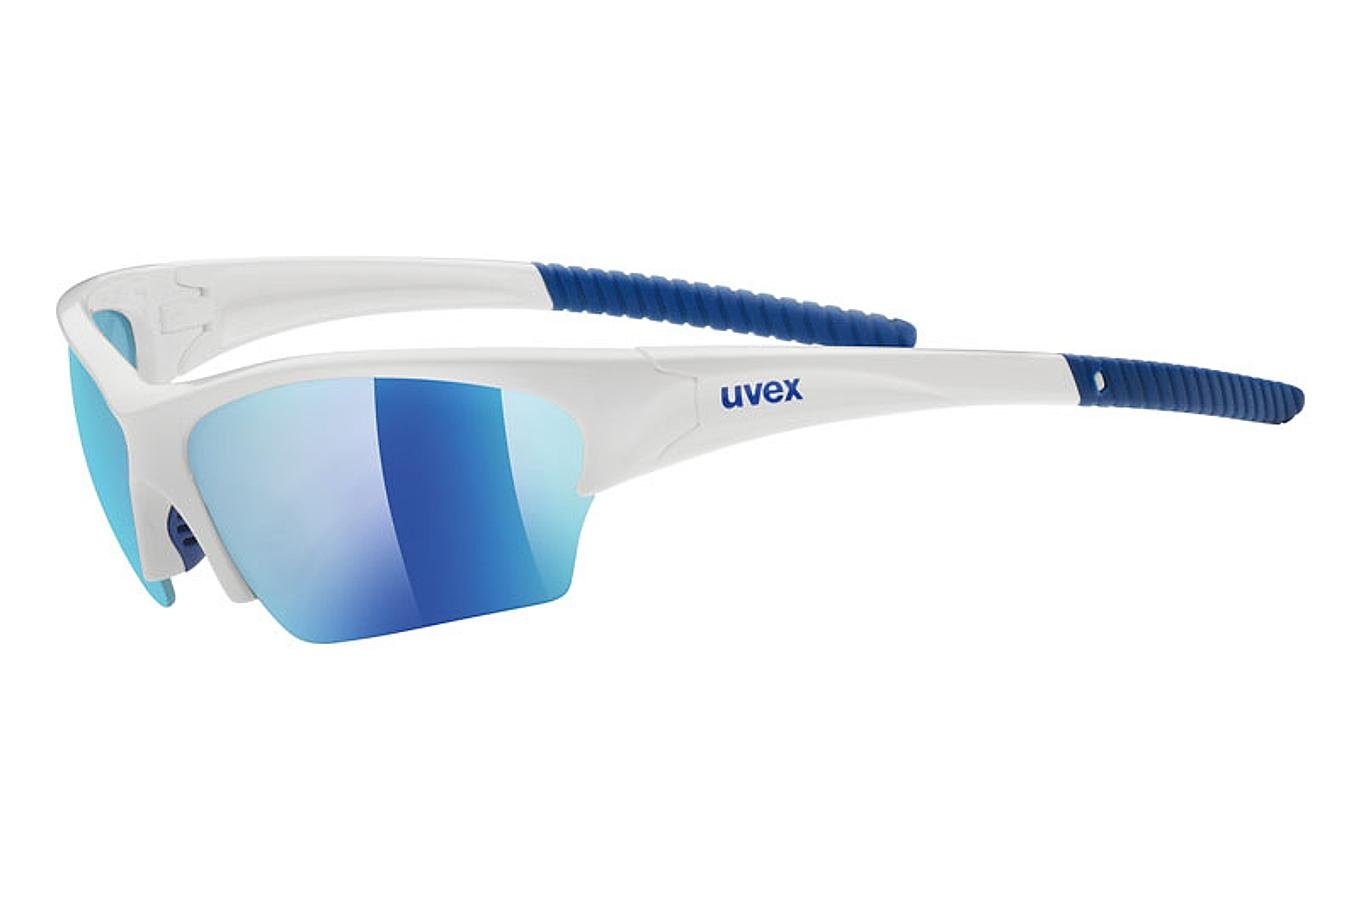 UVEX Radsportbrille »sunsation Brille«